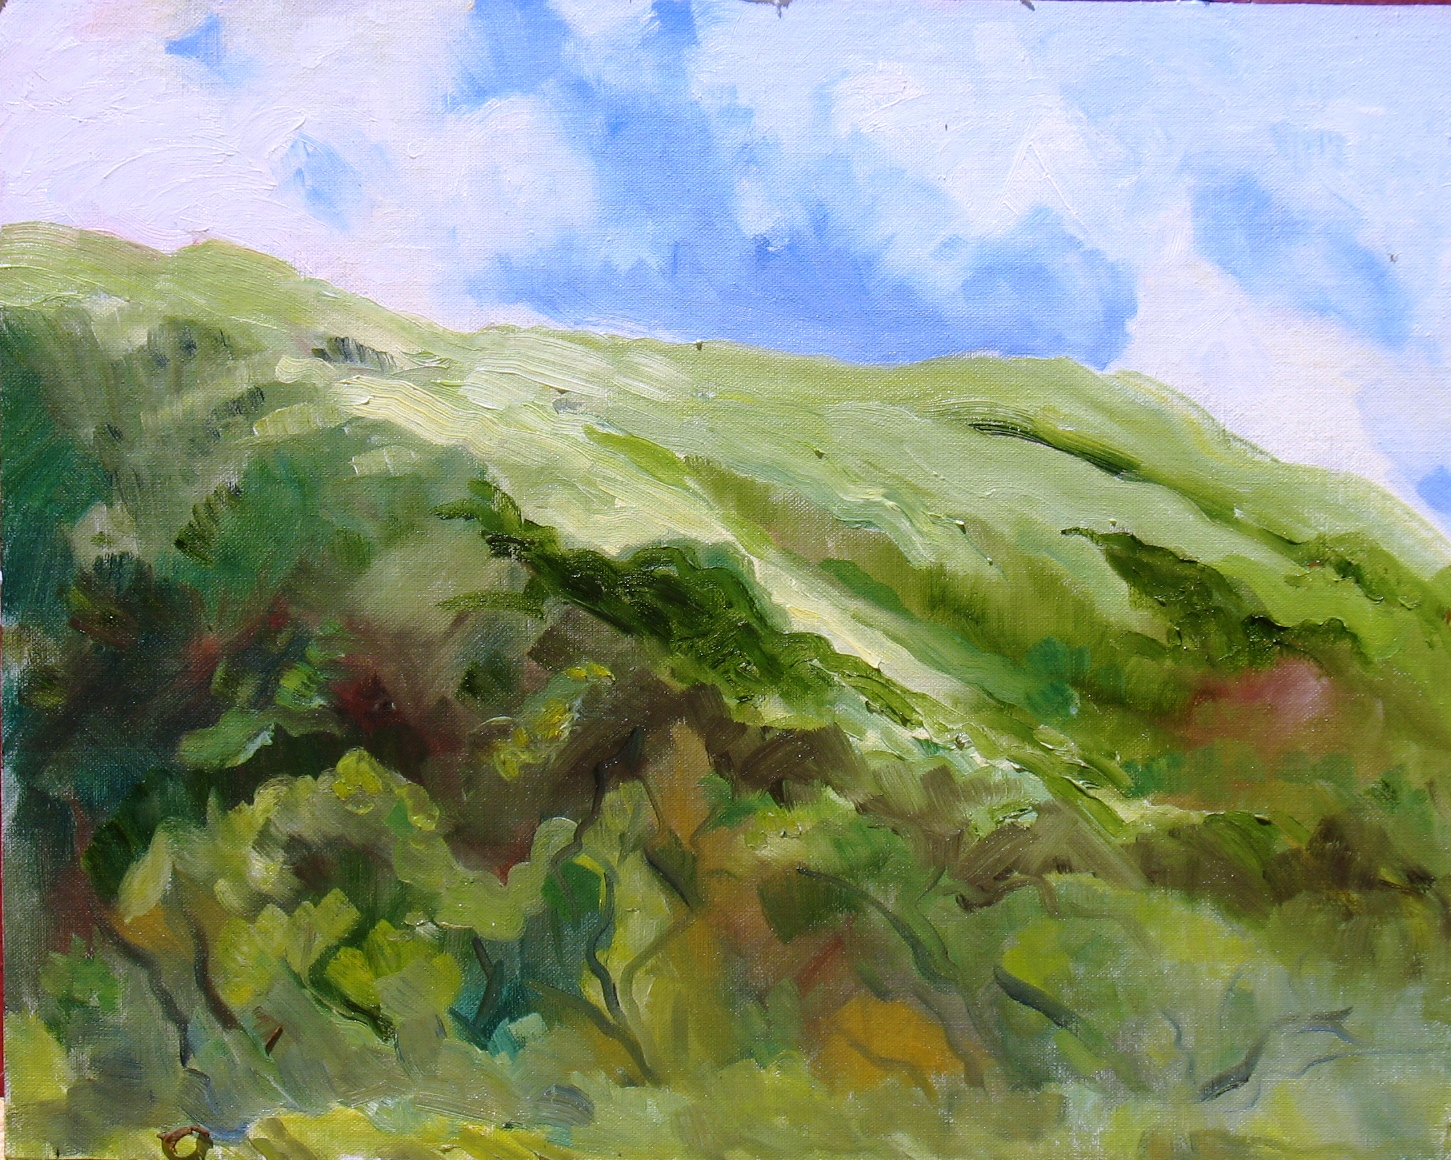 Cloud Breezes on Spring day, 16 x 20 inches, oil on panel